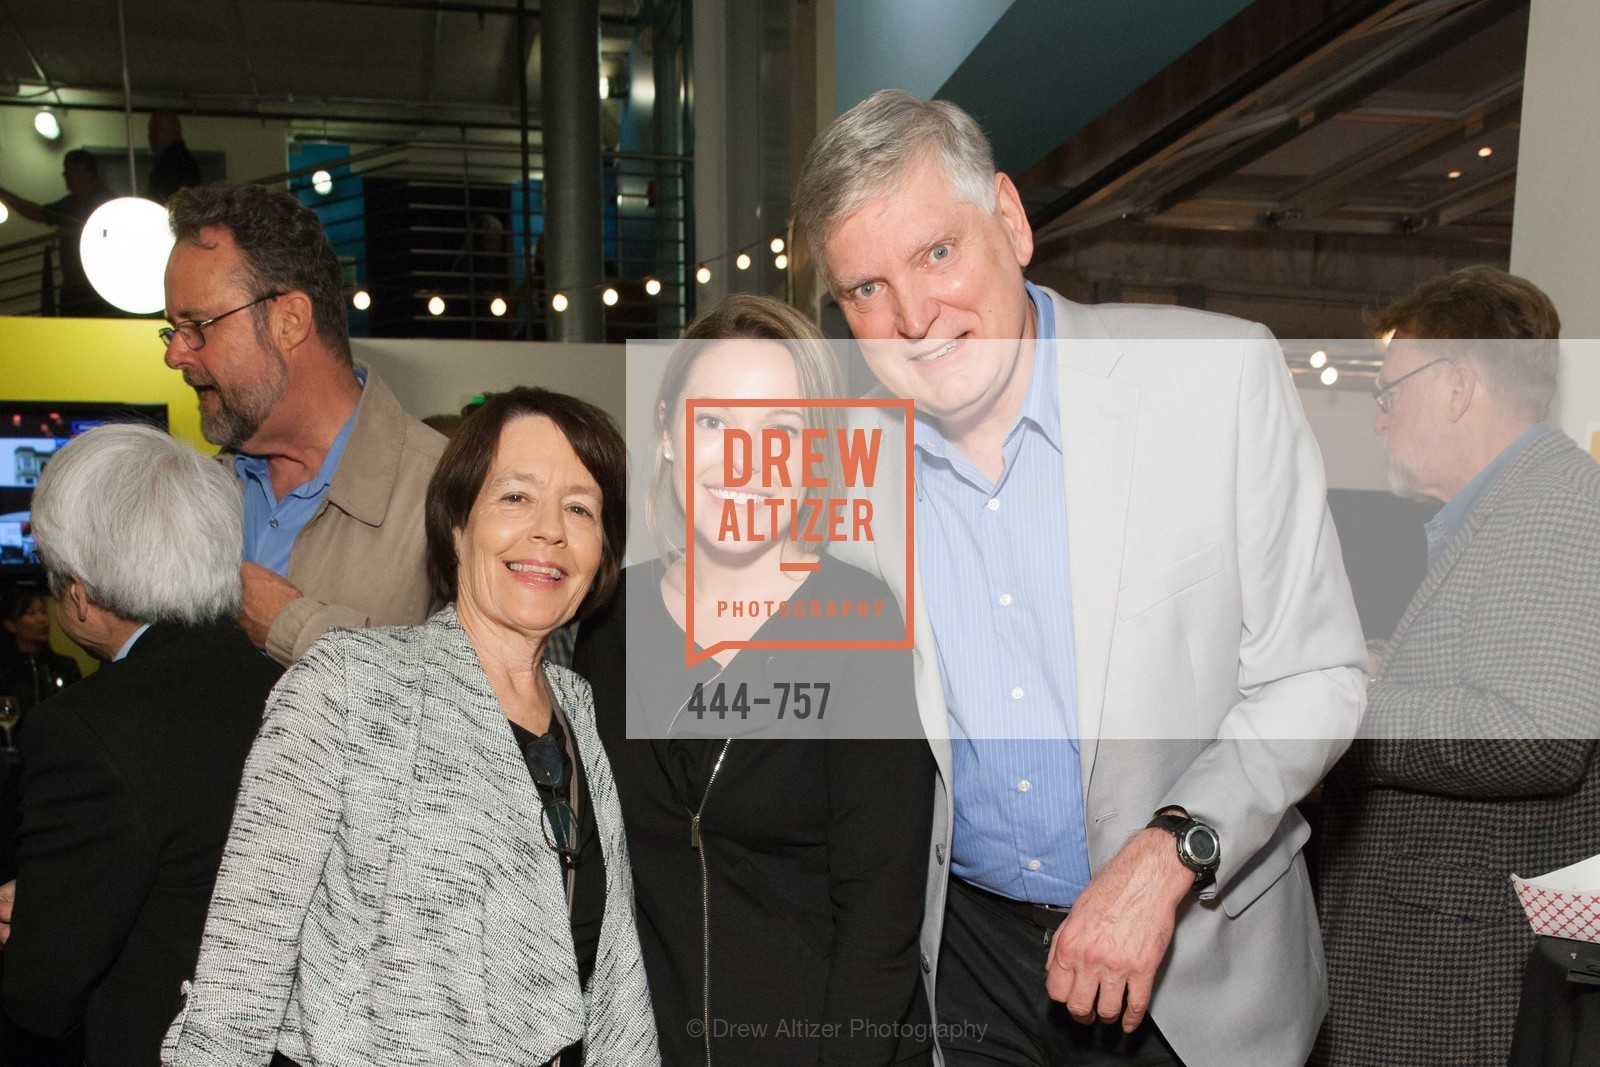 Ann Gallagher, Molly Wlodarcyzk, Dr. Daniel Wlodarcyzk, HOMELESS PRENATAL PROGRAM Our House, Our Mission Gala, US, May 30th, 2015,Drew Altizer, Drew Altizer Photography, full-service agency, private events, San Francisco photographer, photographer california